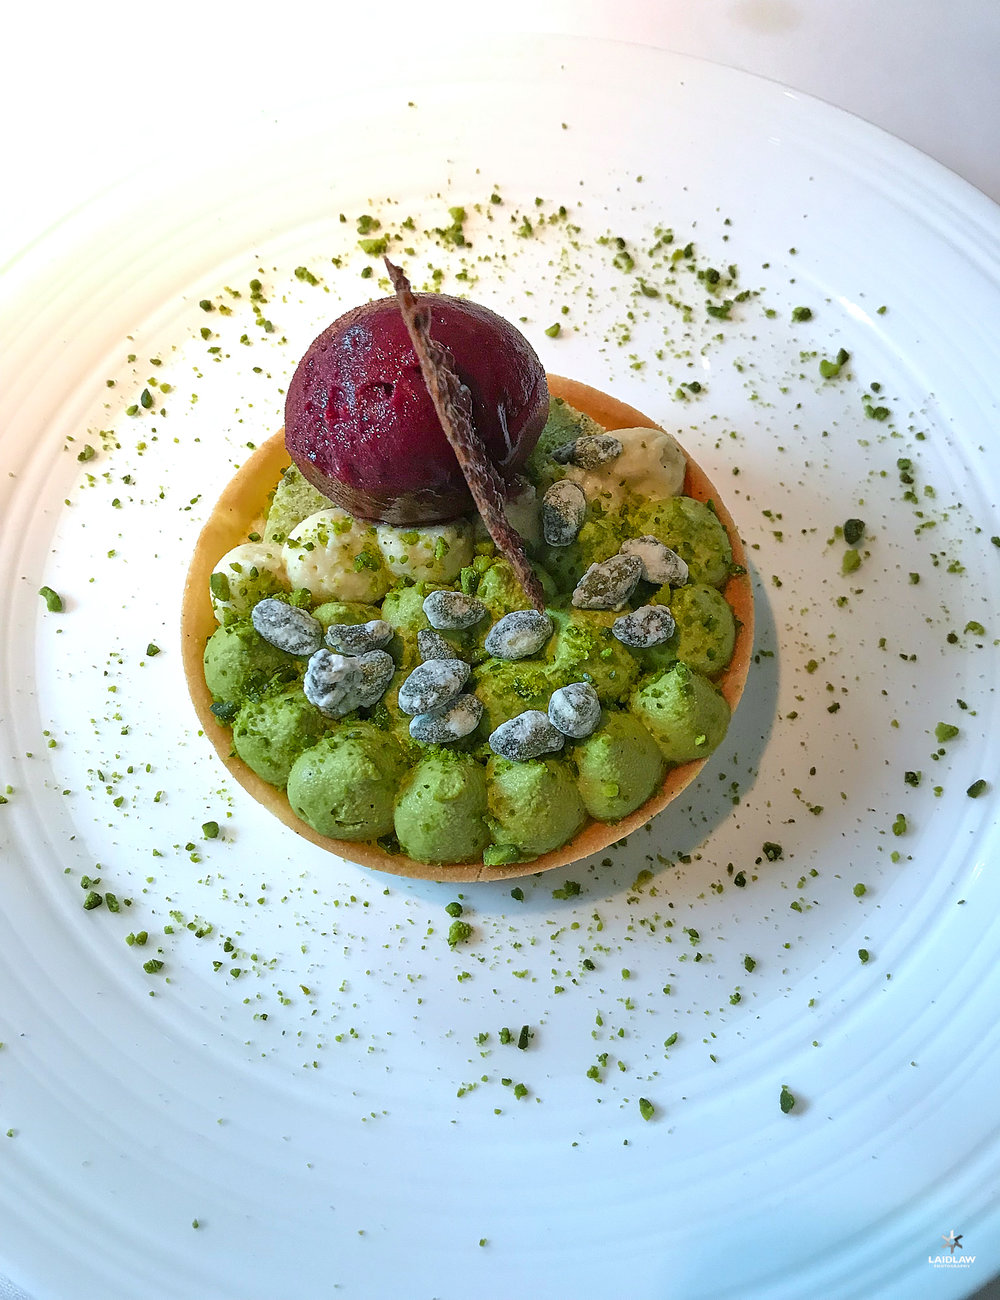 Torta del giorno... Pistachio cream, nuts and black cherry ice-cream